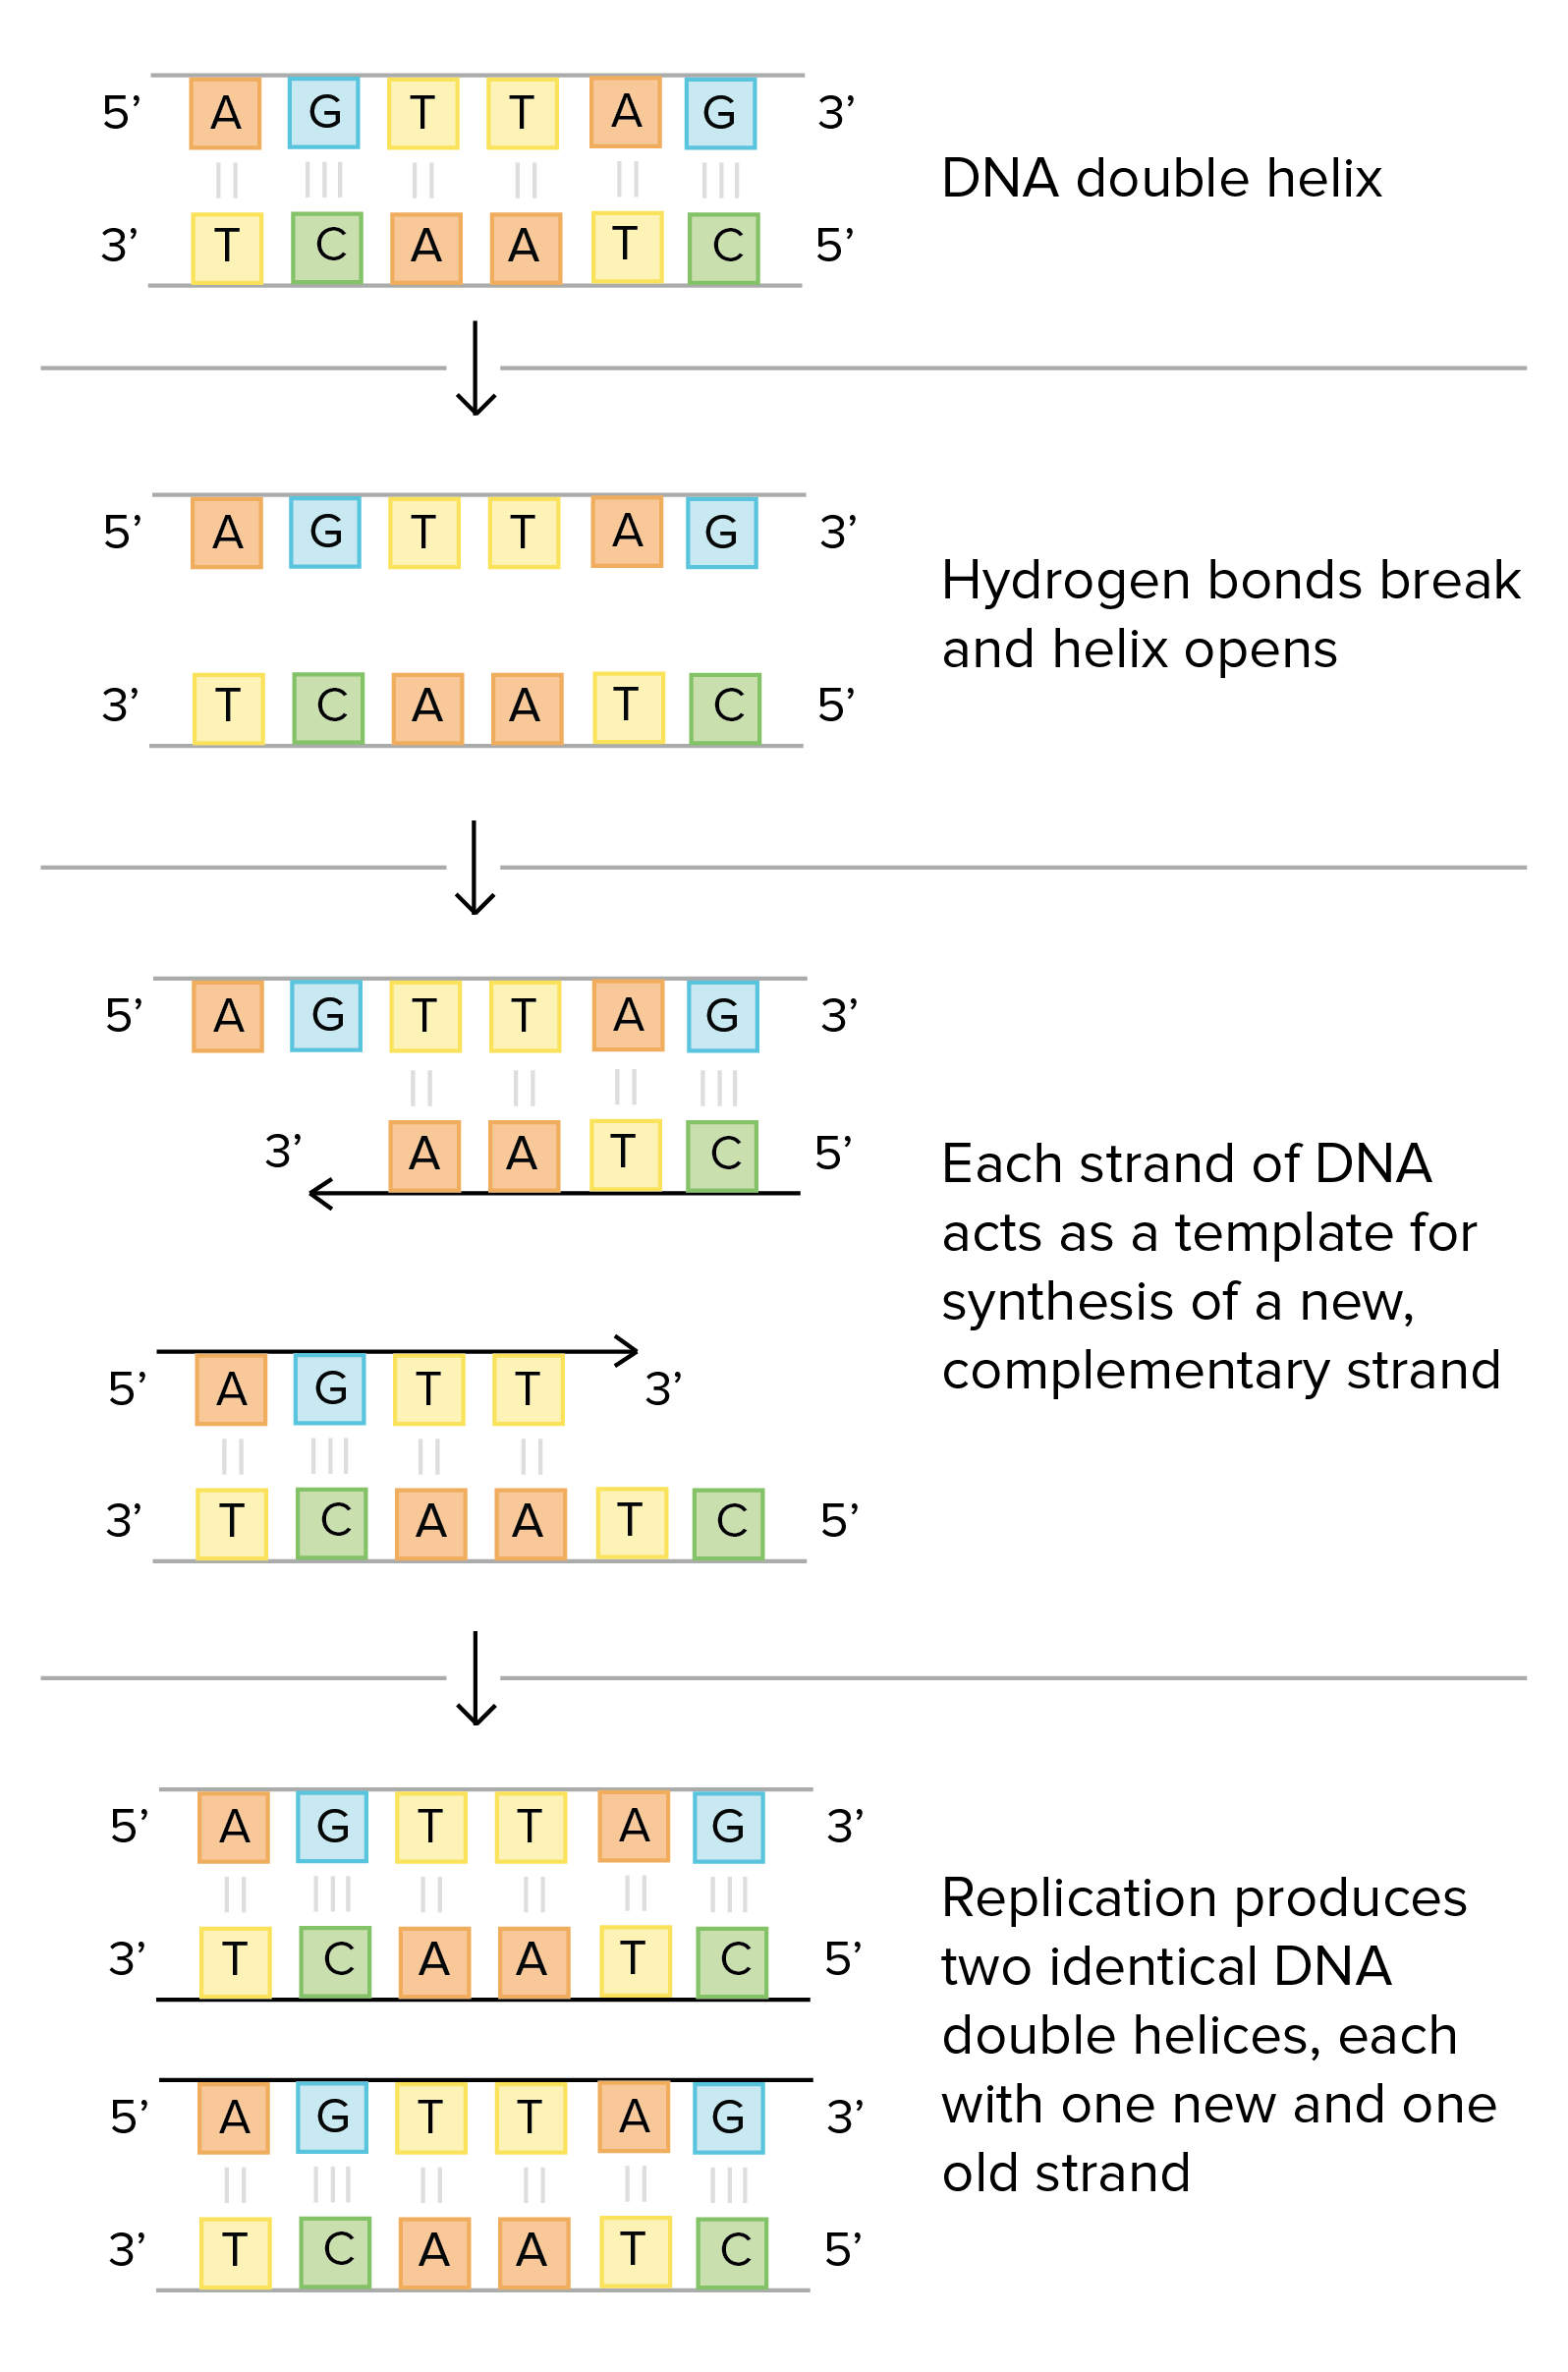 Worksheets Dna The Double Helix Worksheet Answers molecular structure of dna video khan academy